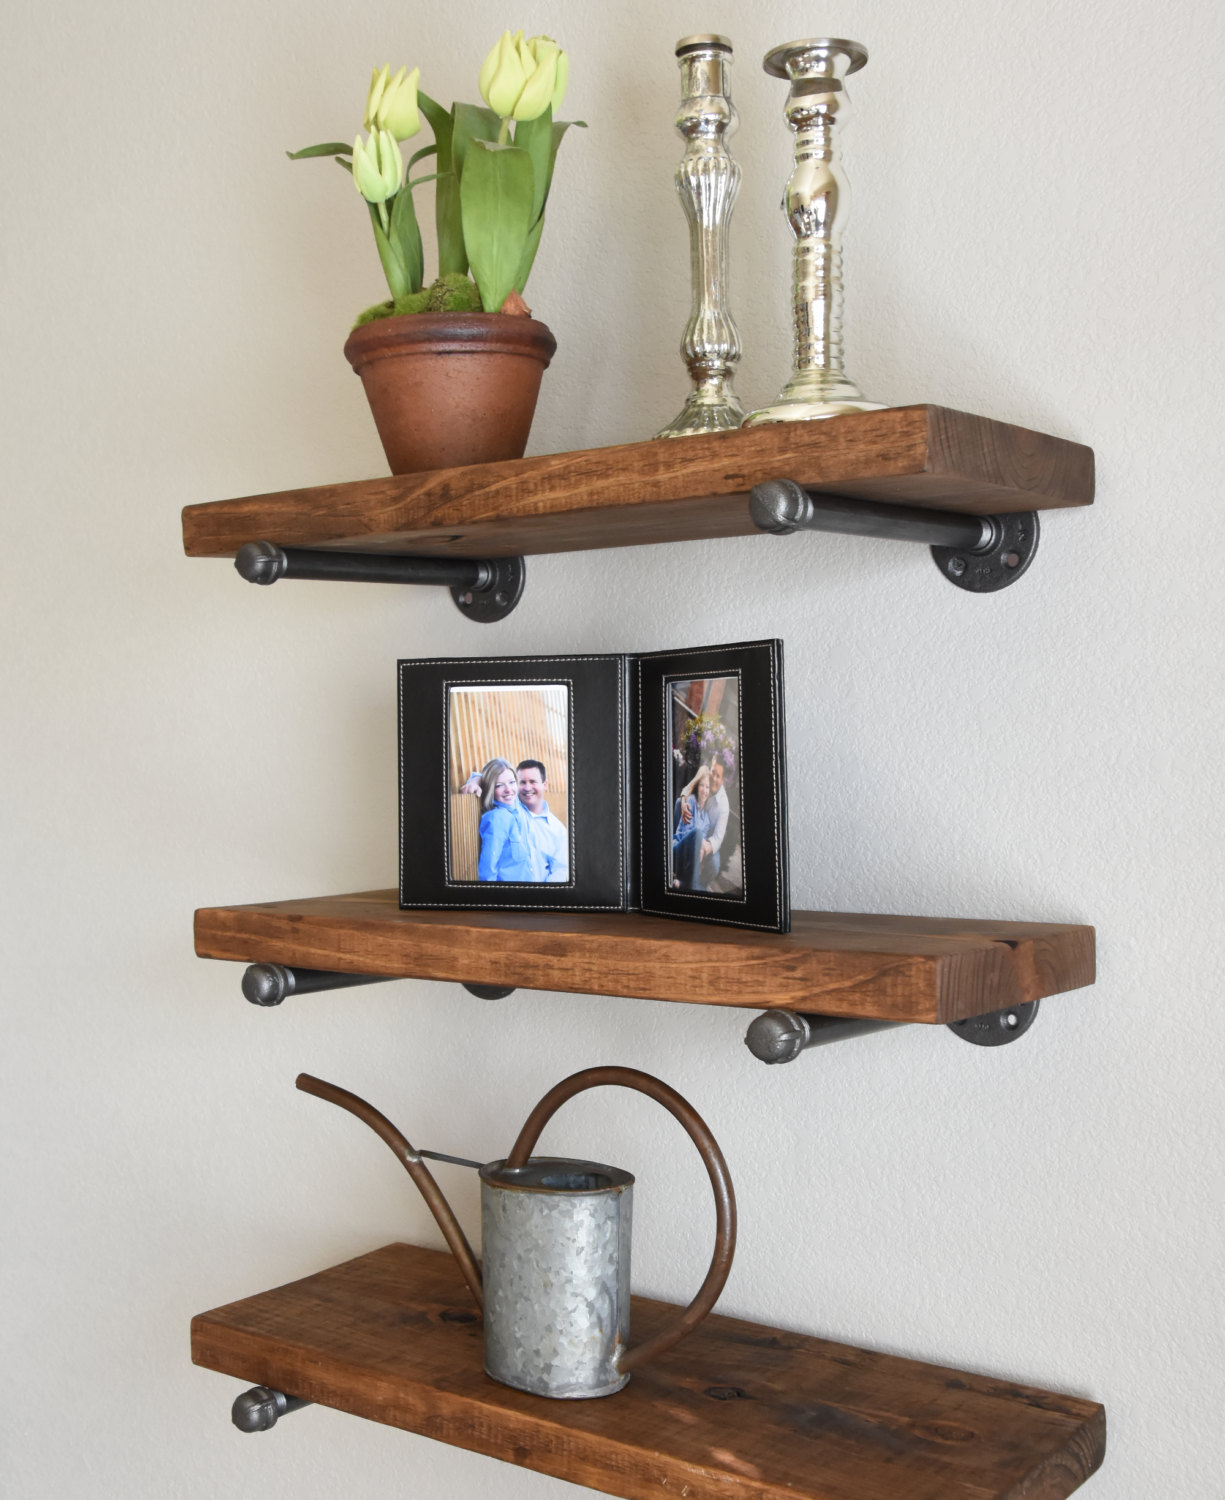 deep floating shelves wood industrial pipe shelf etsy fullxfull lack dimensions cool wall bookshelves wooden ikea glass dvd holder modern mantle square cube storage units kitchen